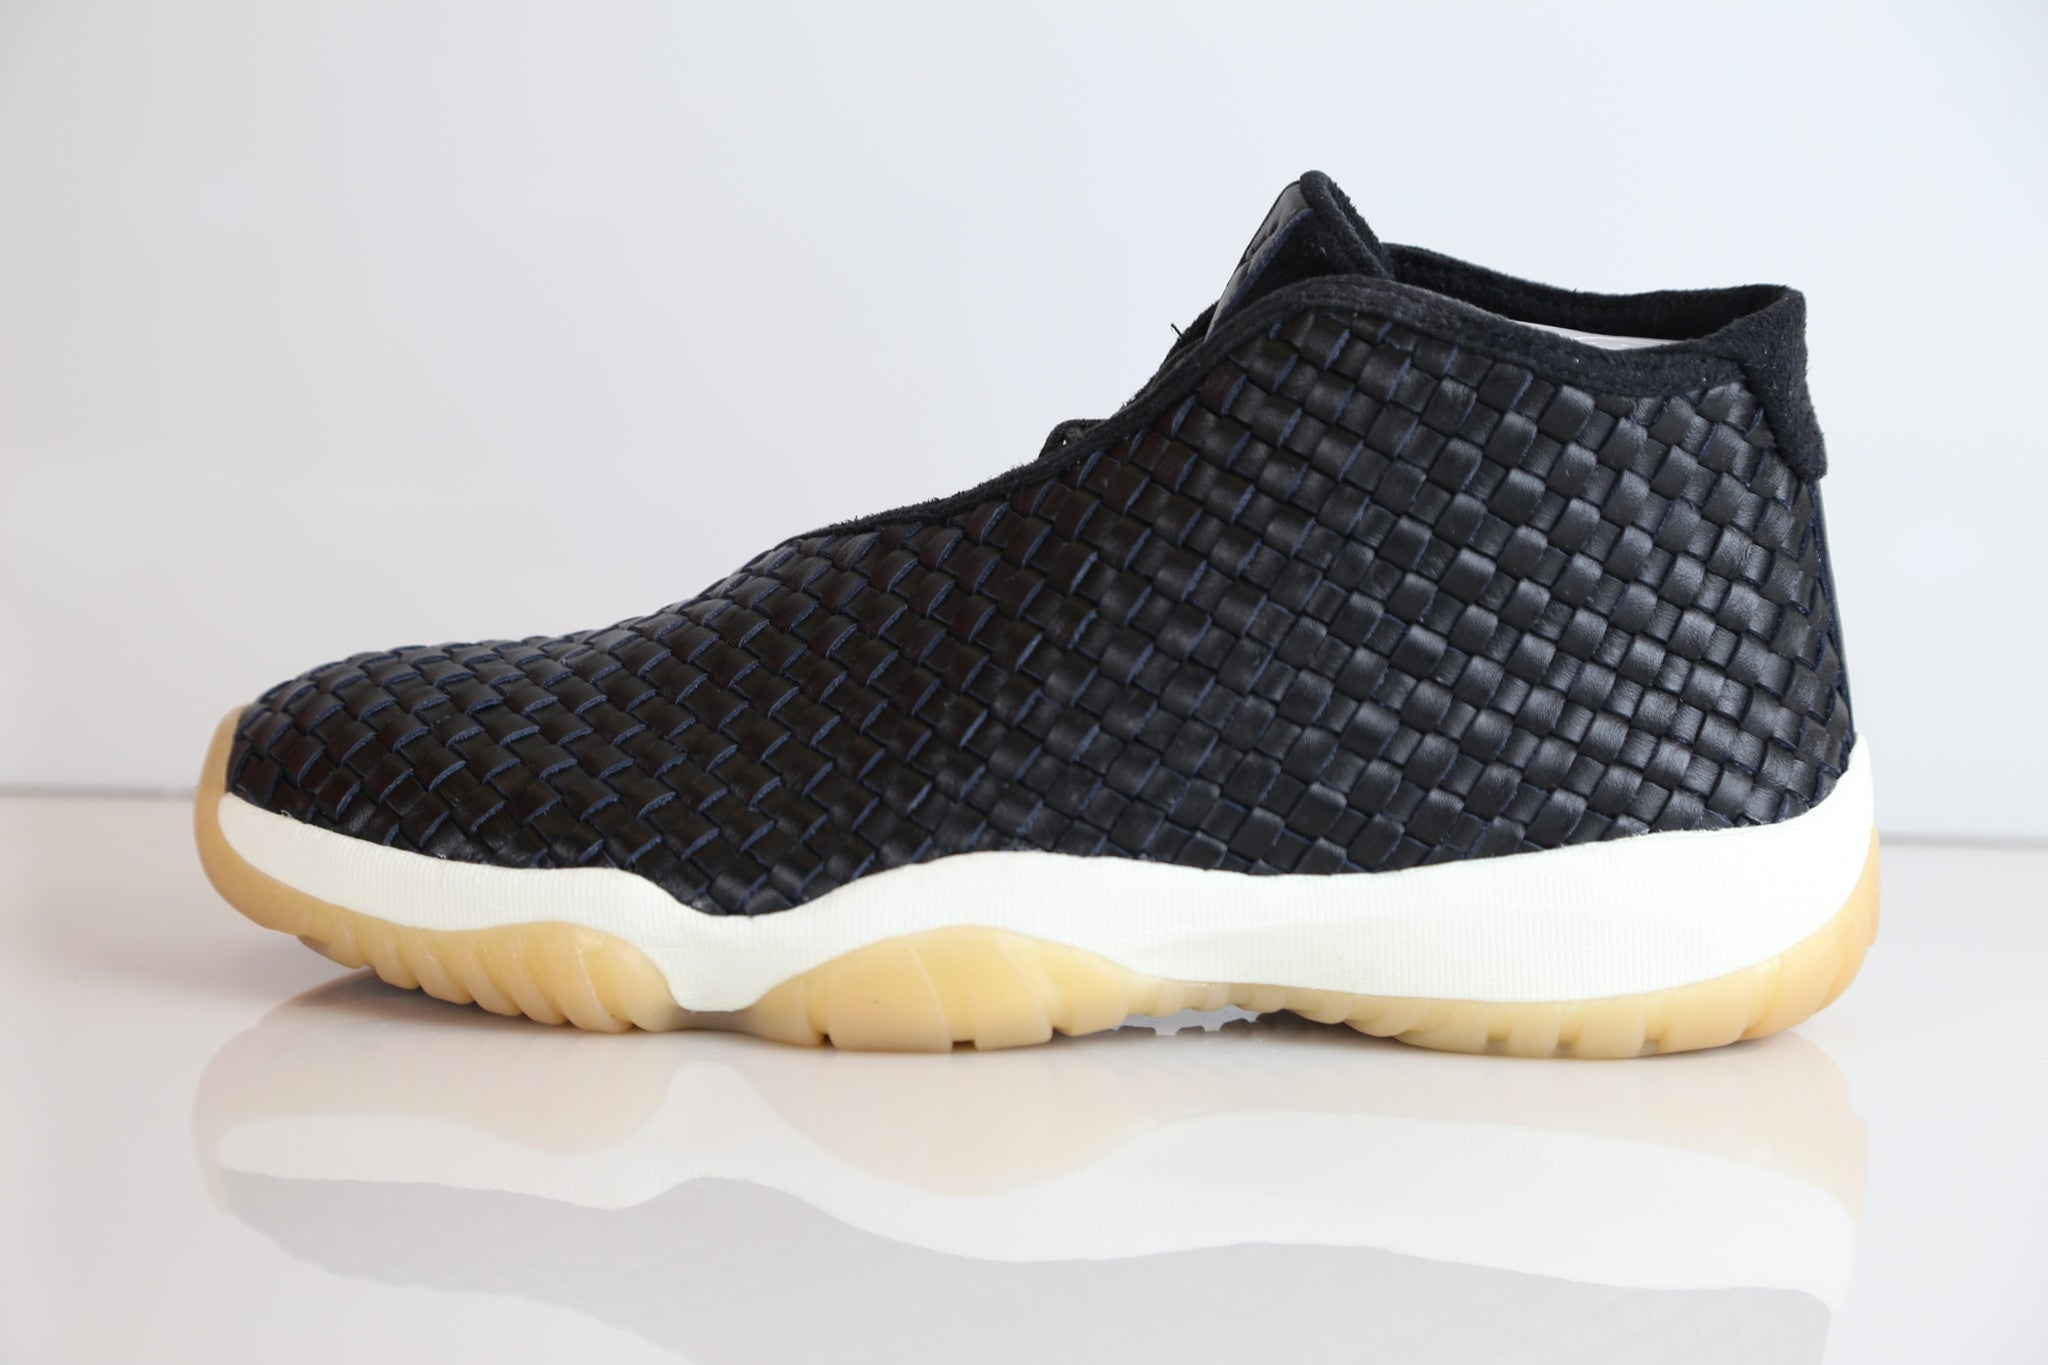 new styles dab09 58f29 Nike Air Jordan Future Premium Leather Black Gum Sail 652141-019    Zadehkicks